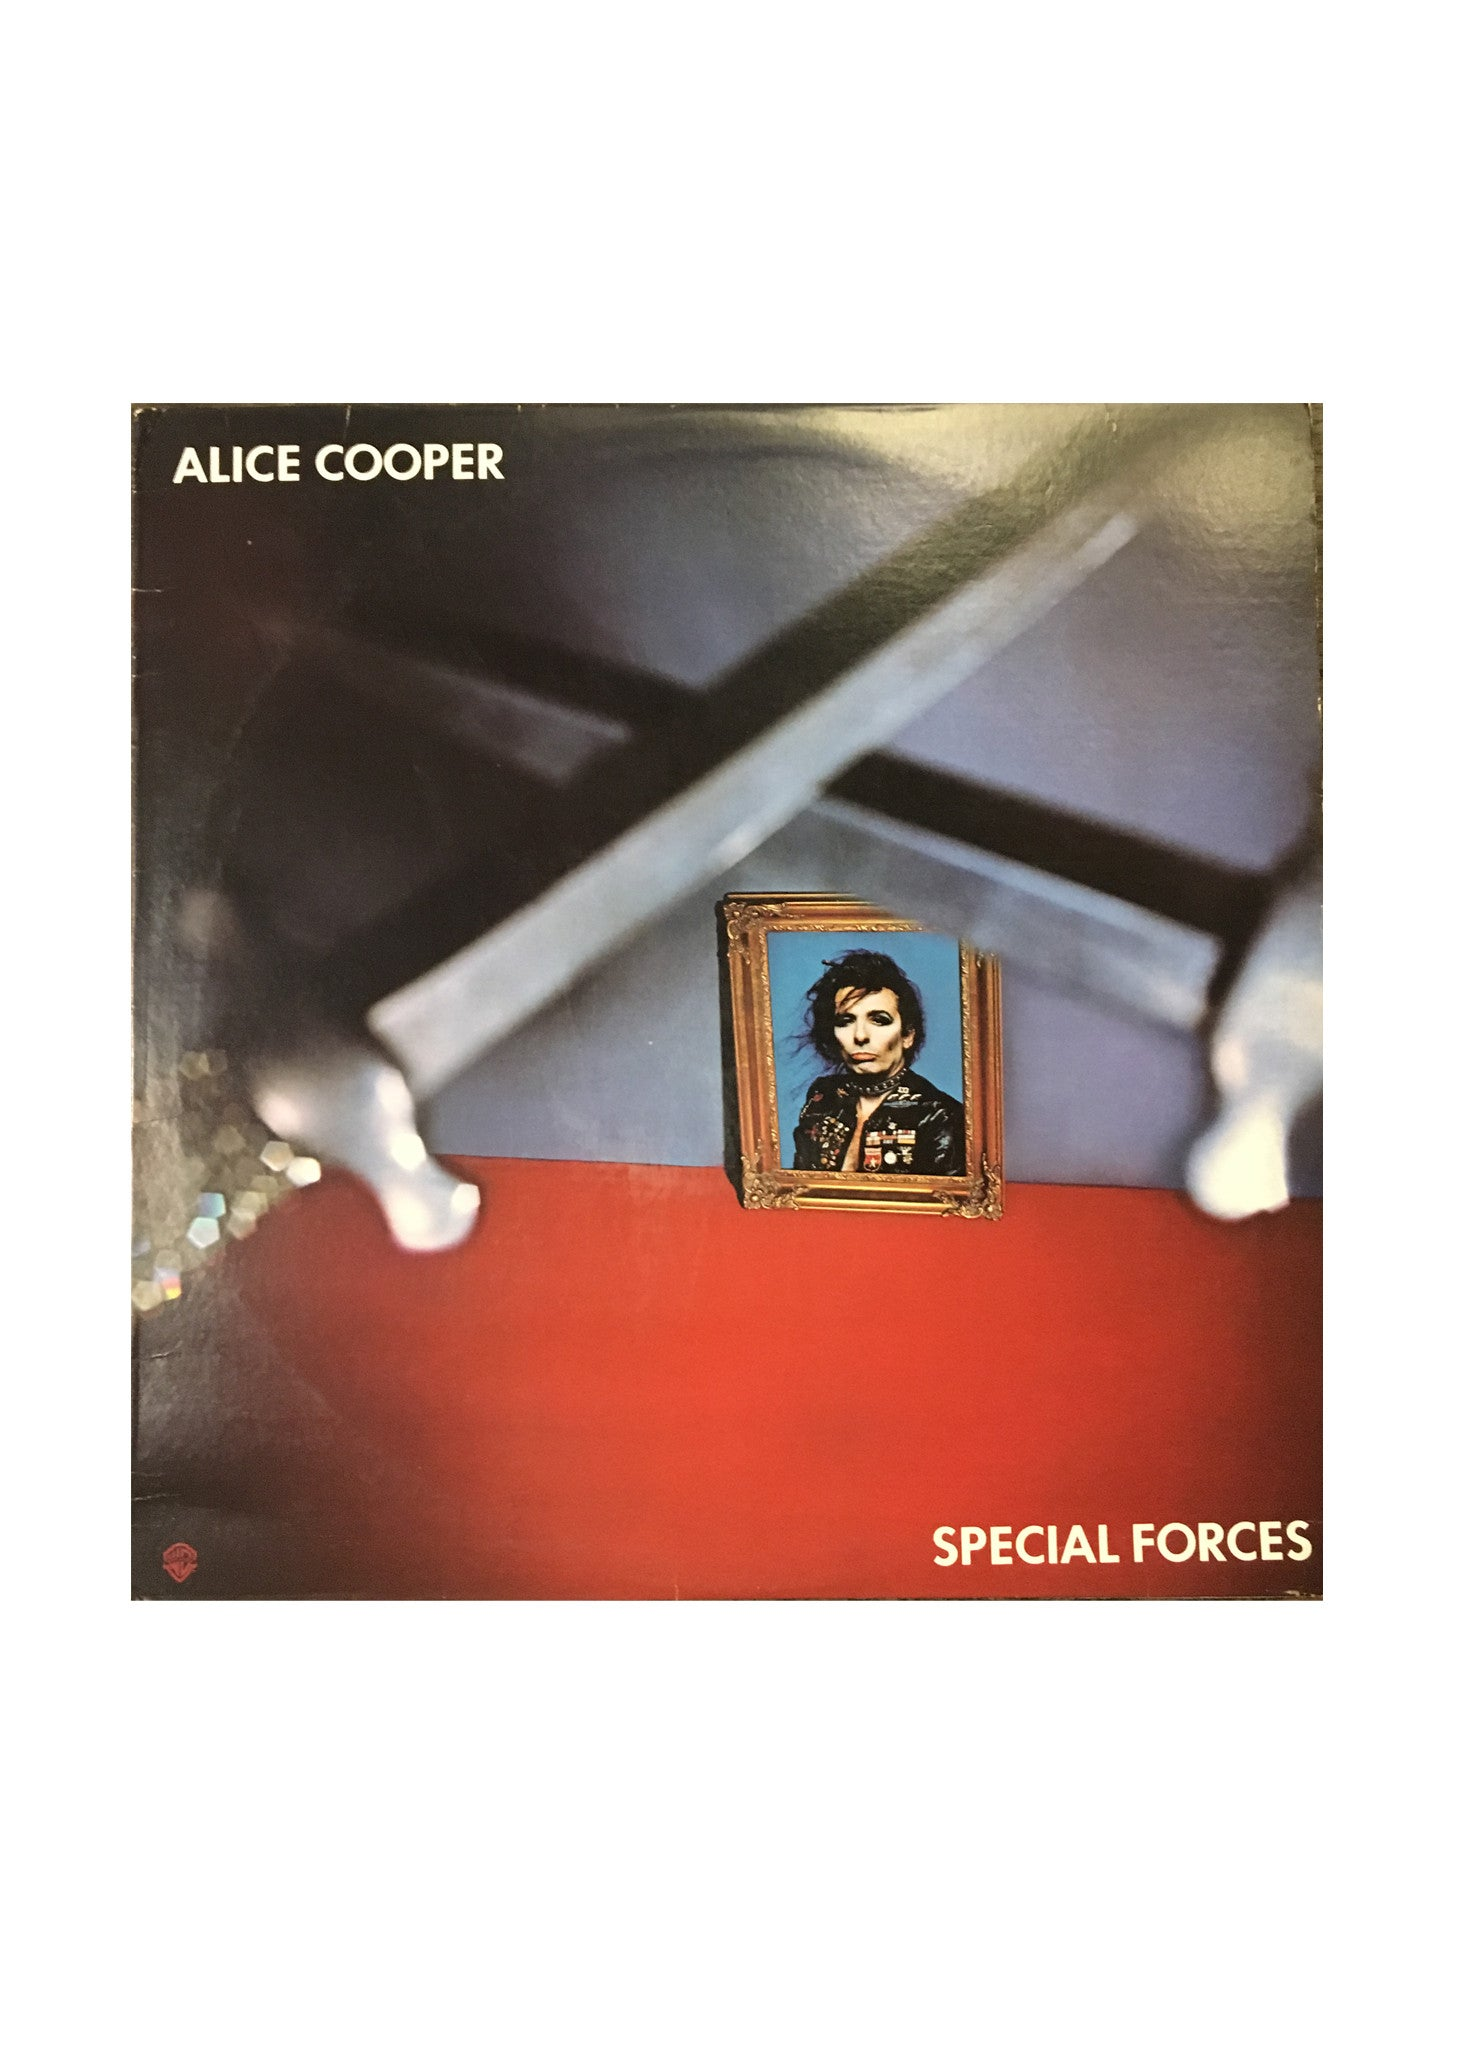 "Alice Cooper - Special Forces (LP 12"")"